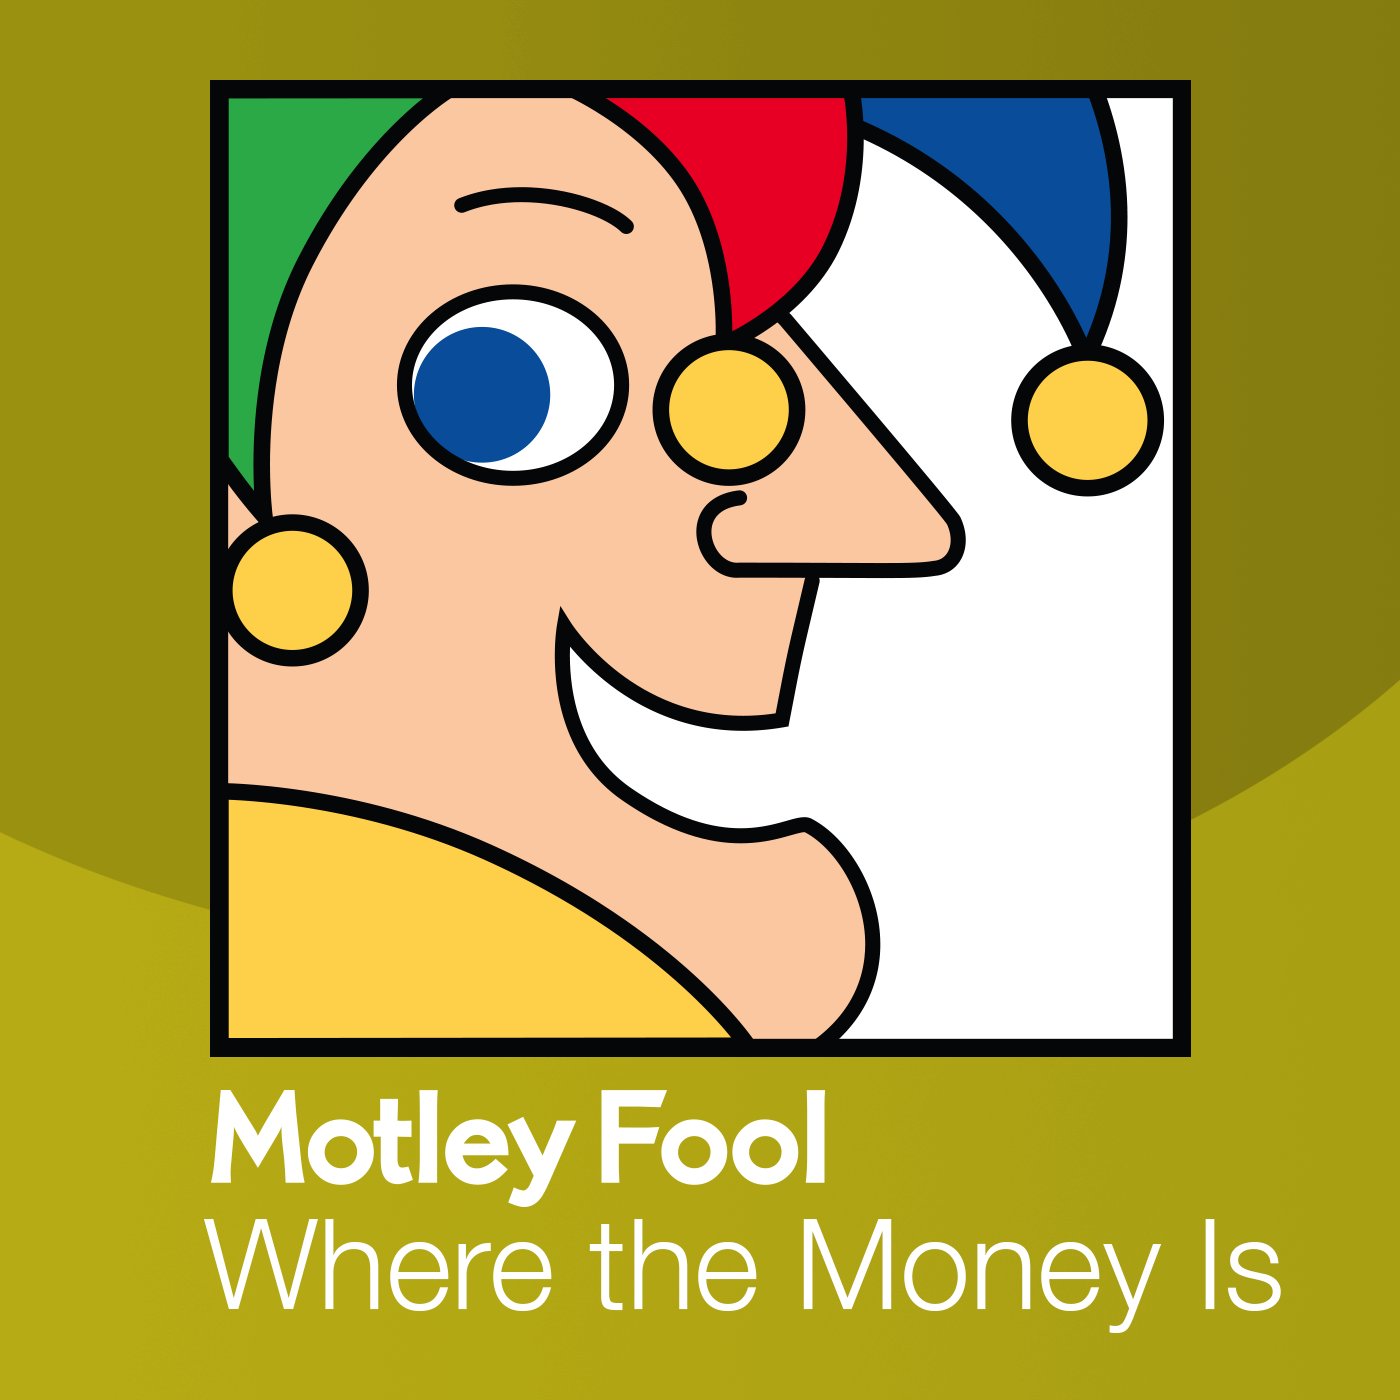 Where the Money Is 03.27.14